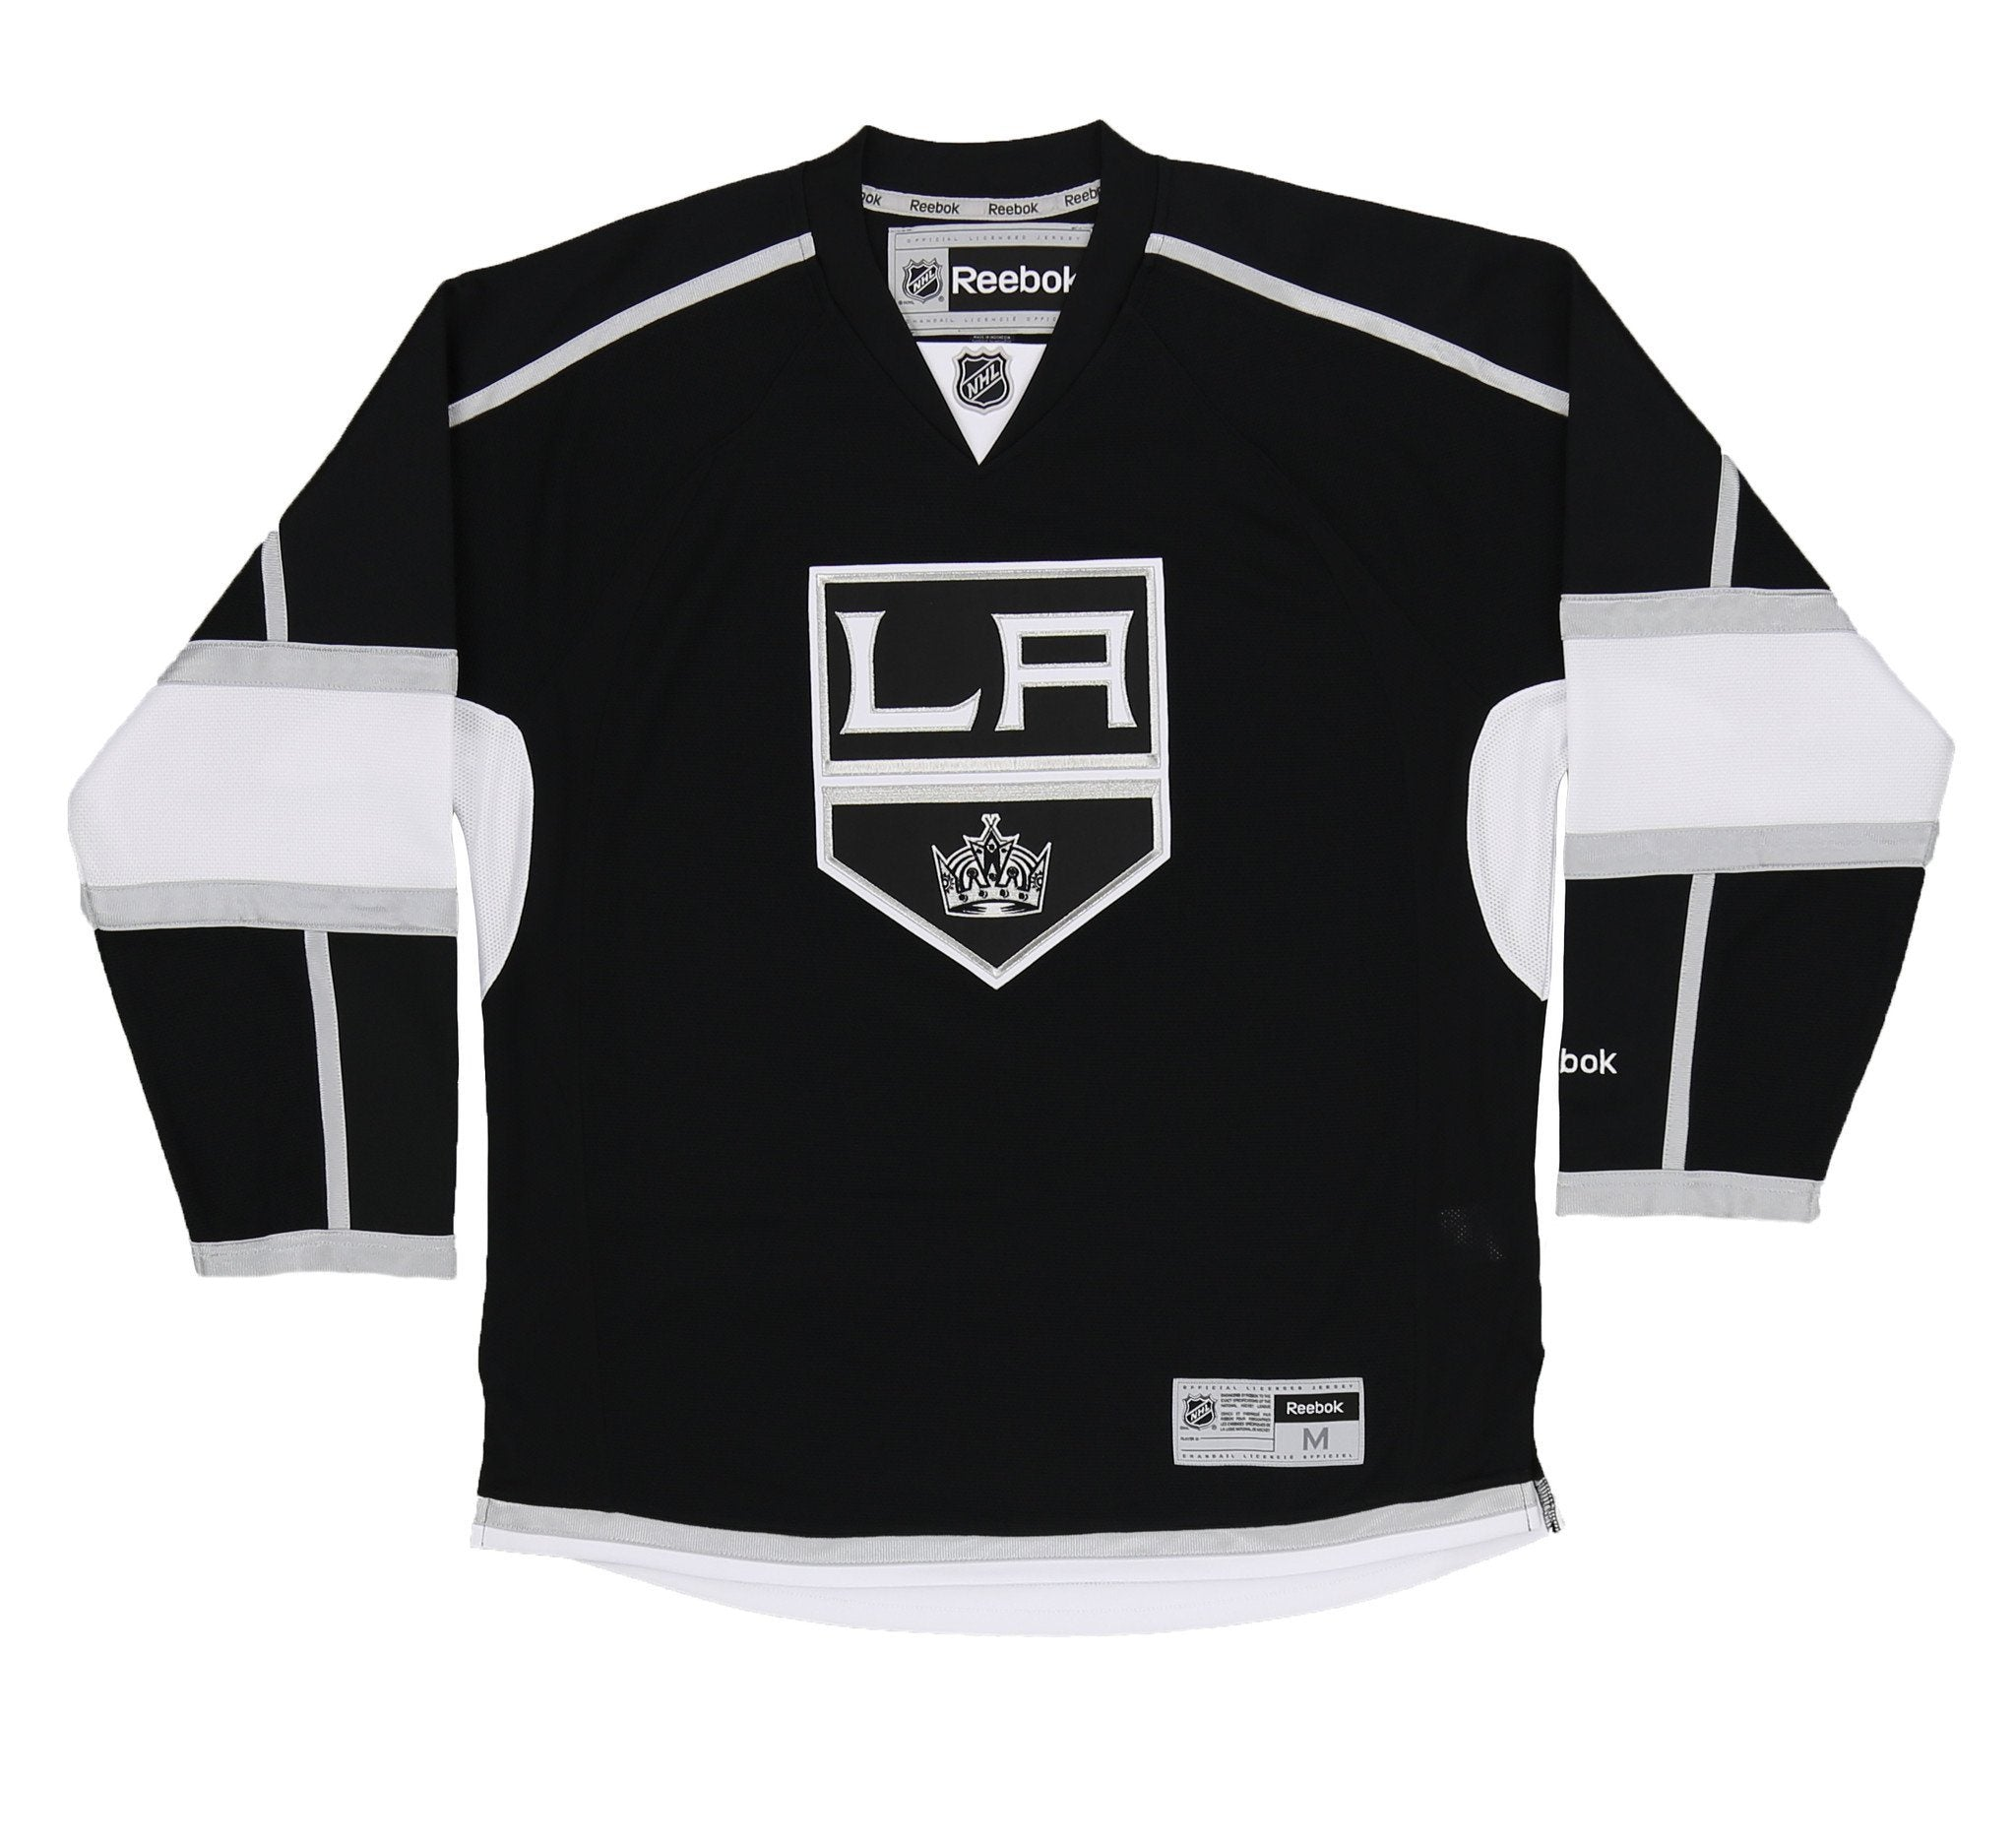 47c2b2226 LOS ANGELES KINGS NHL HOCKEY JERSEY – SHOPATKINGS